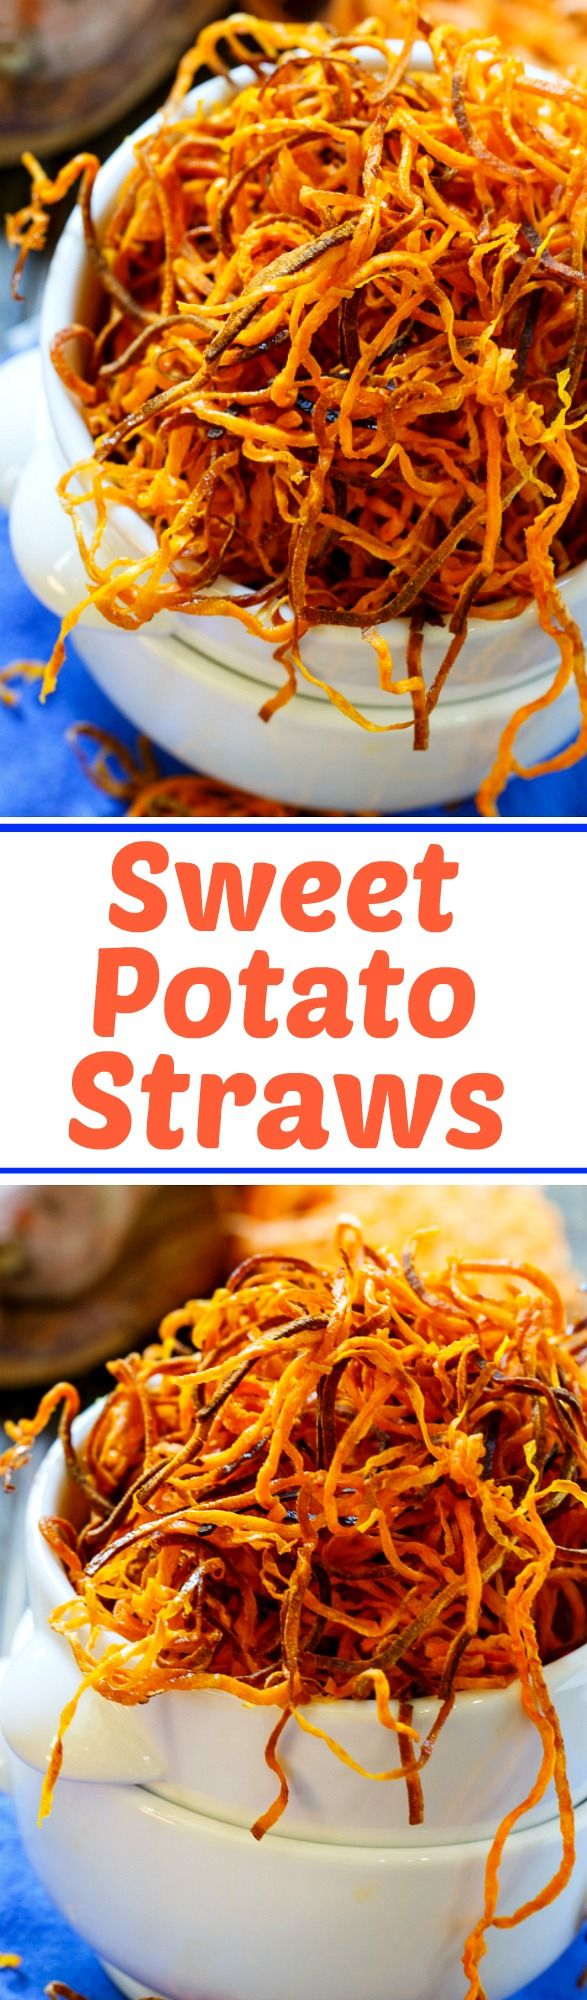 Sweet Potato Straws- baked in the oven until crispy!